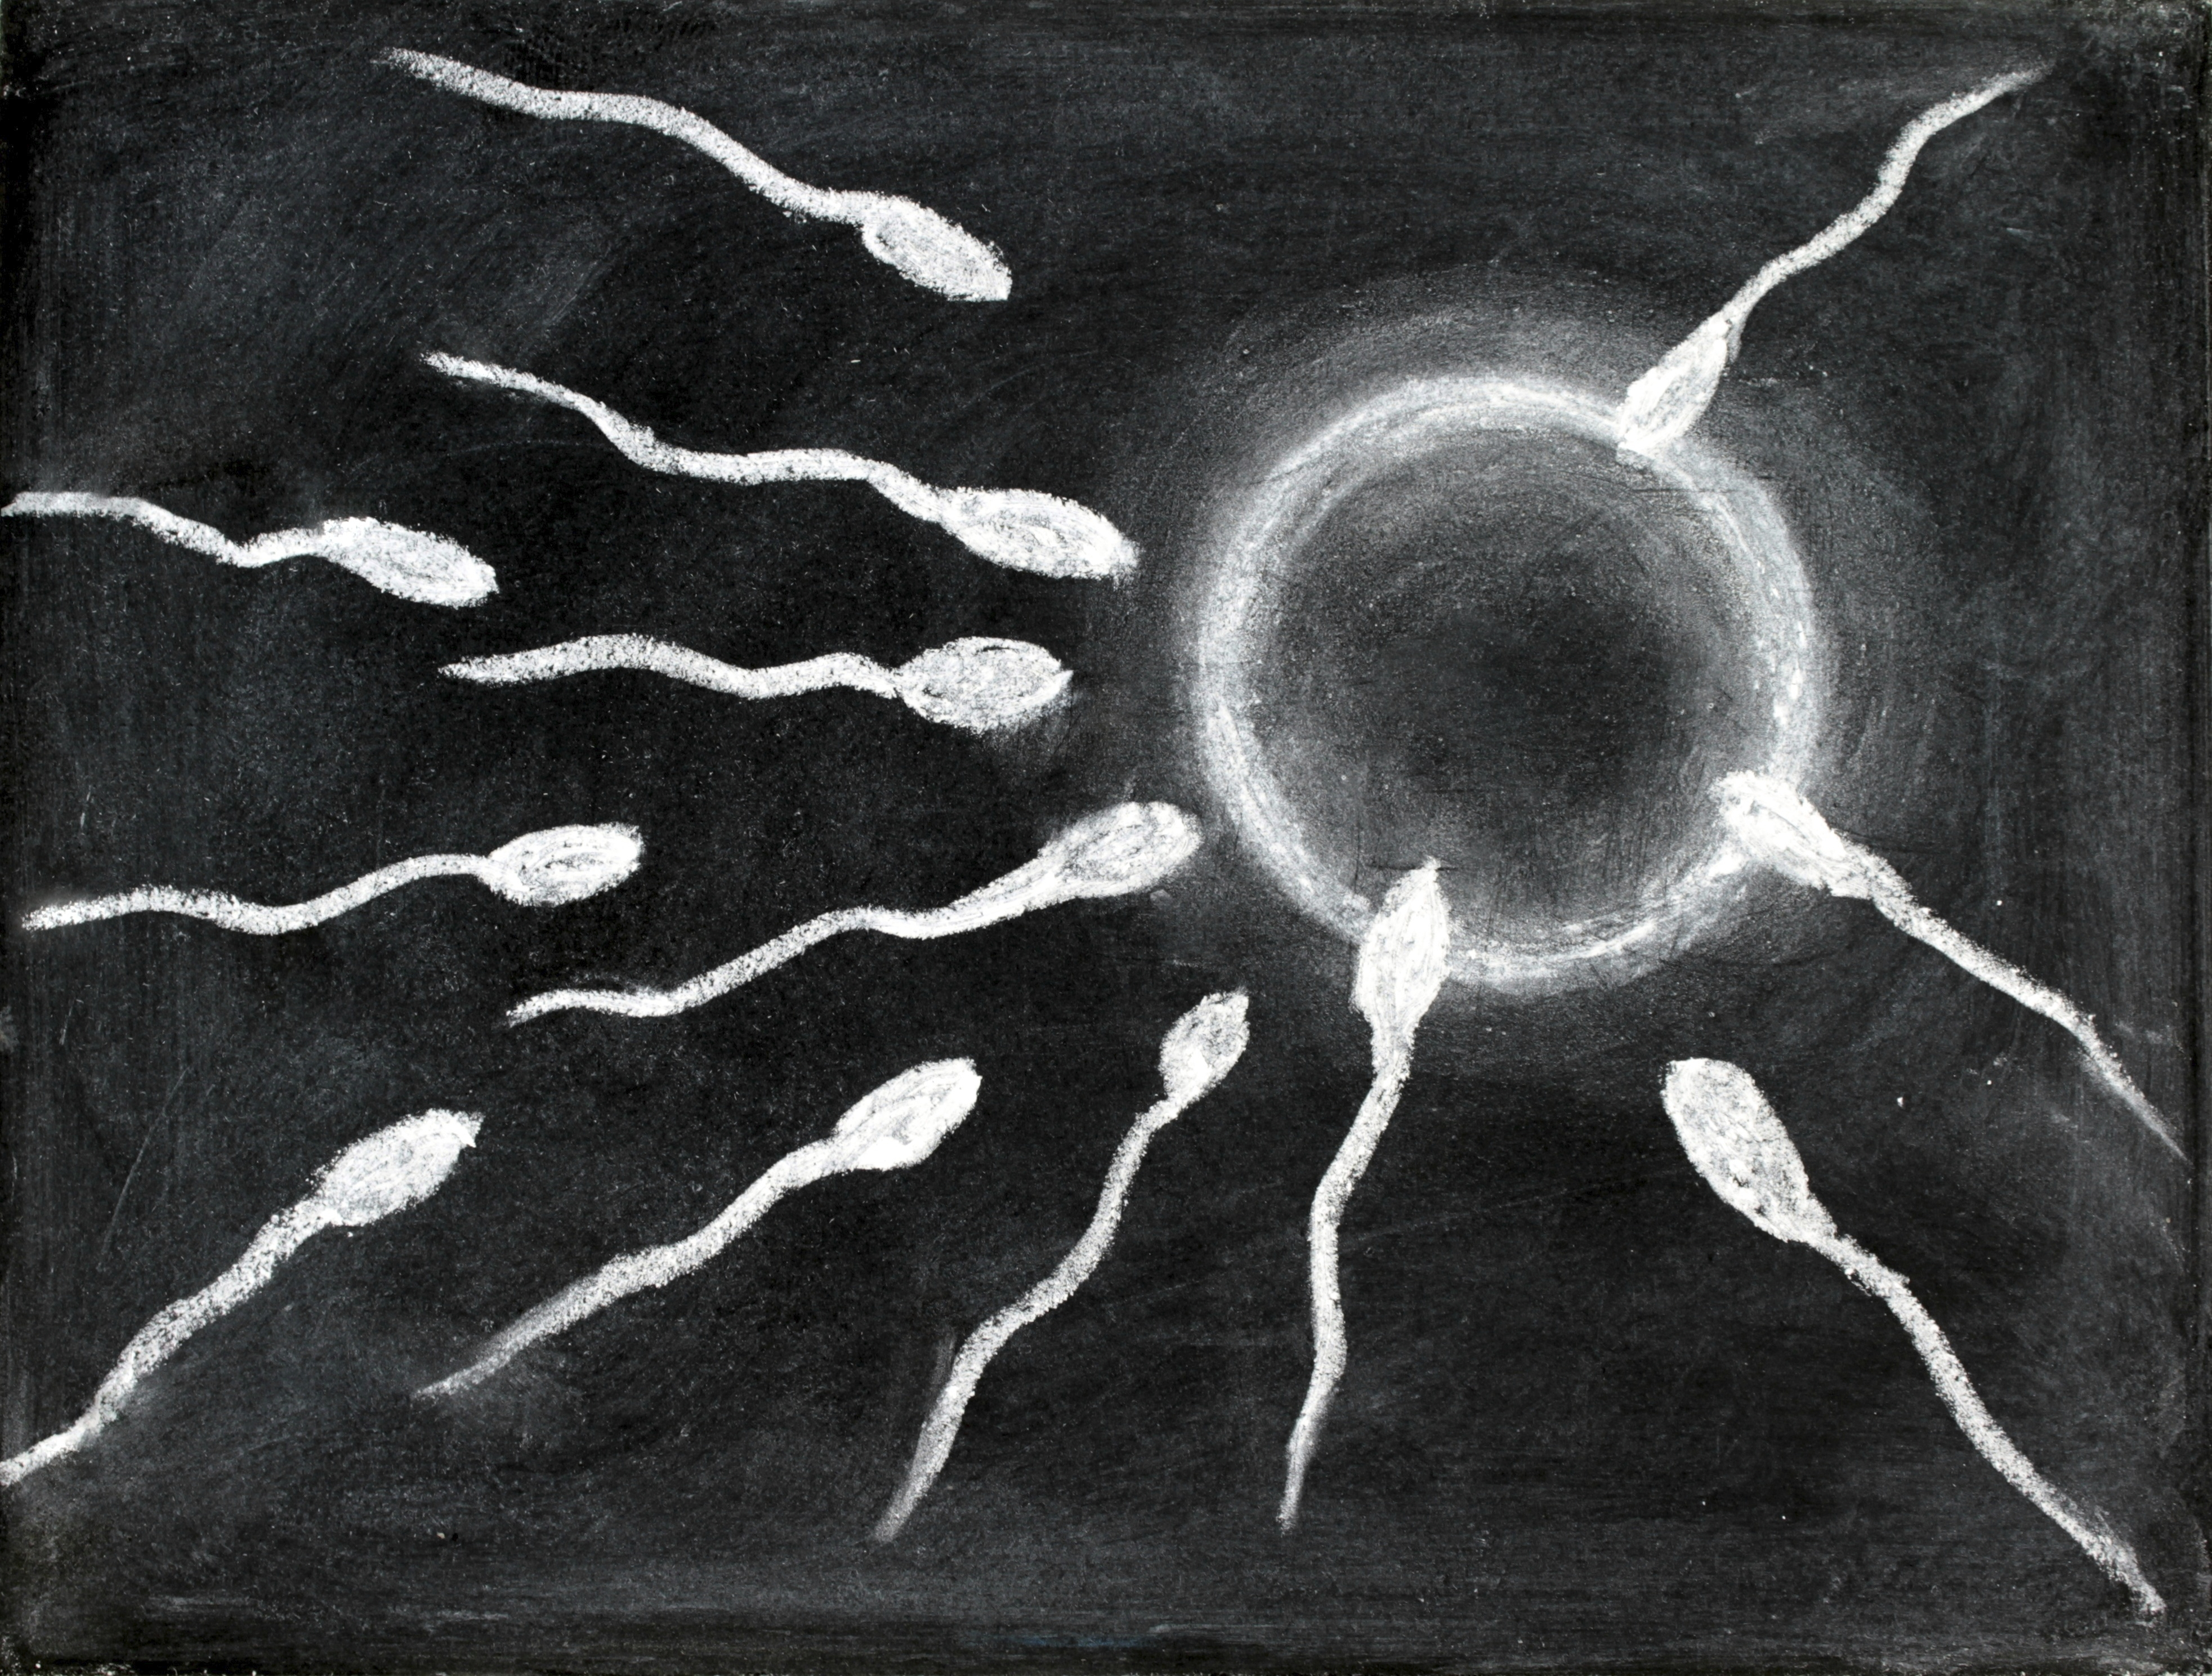 Fertilization of sperm and egg drawing with chalk on blackboard